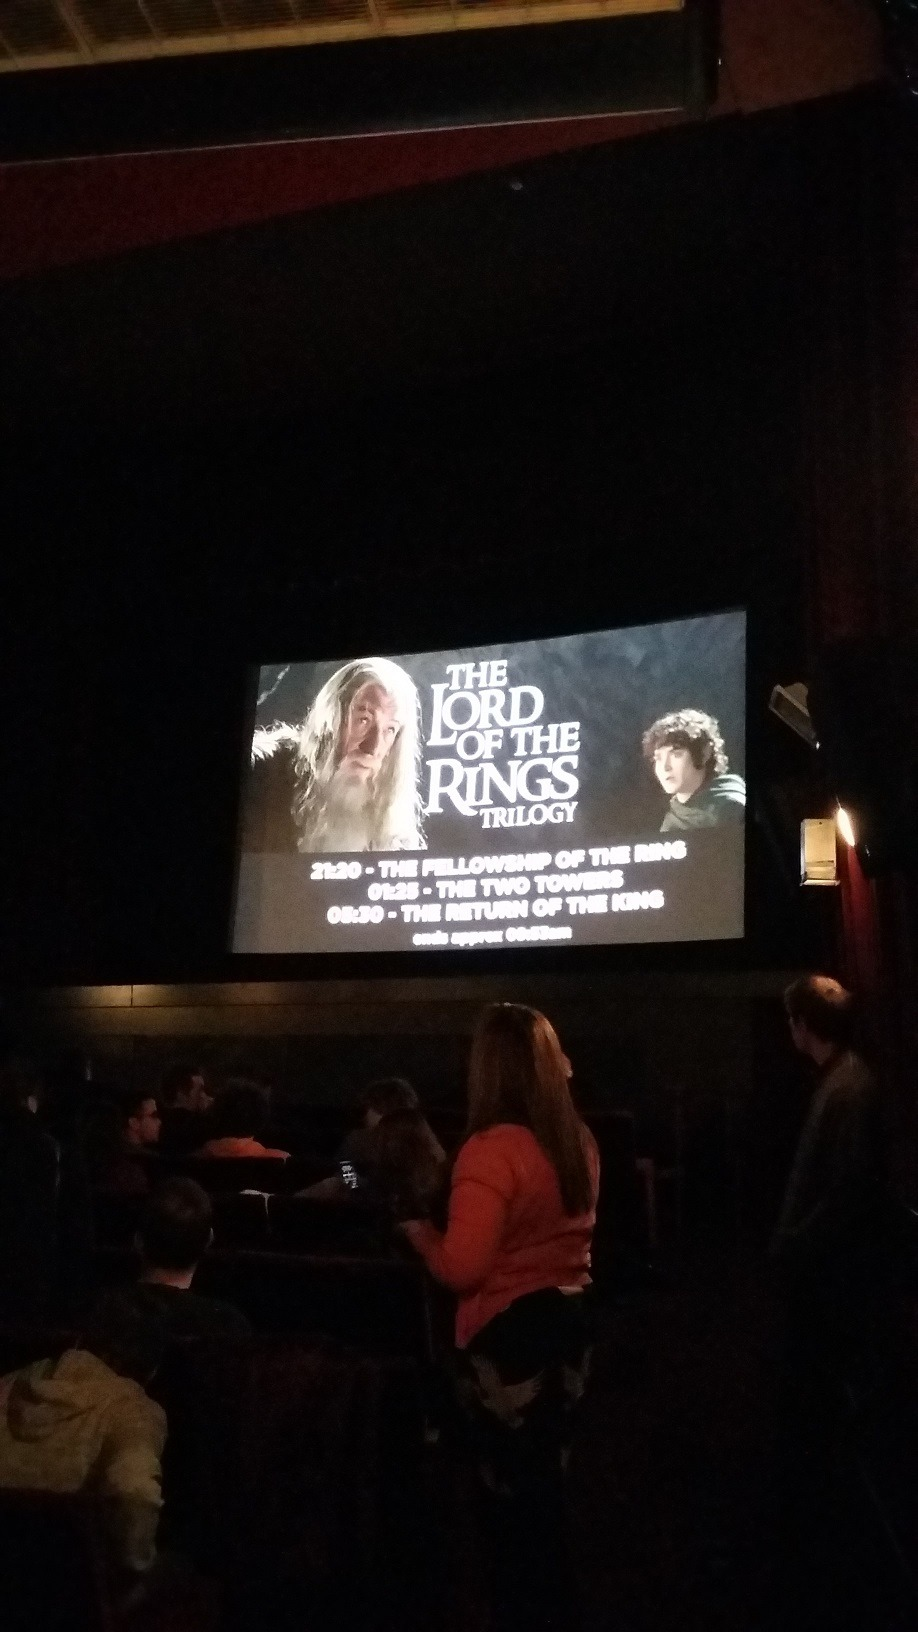 Lord of the Rings screening